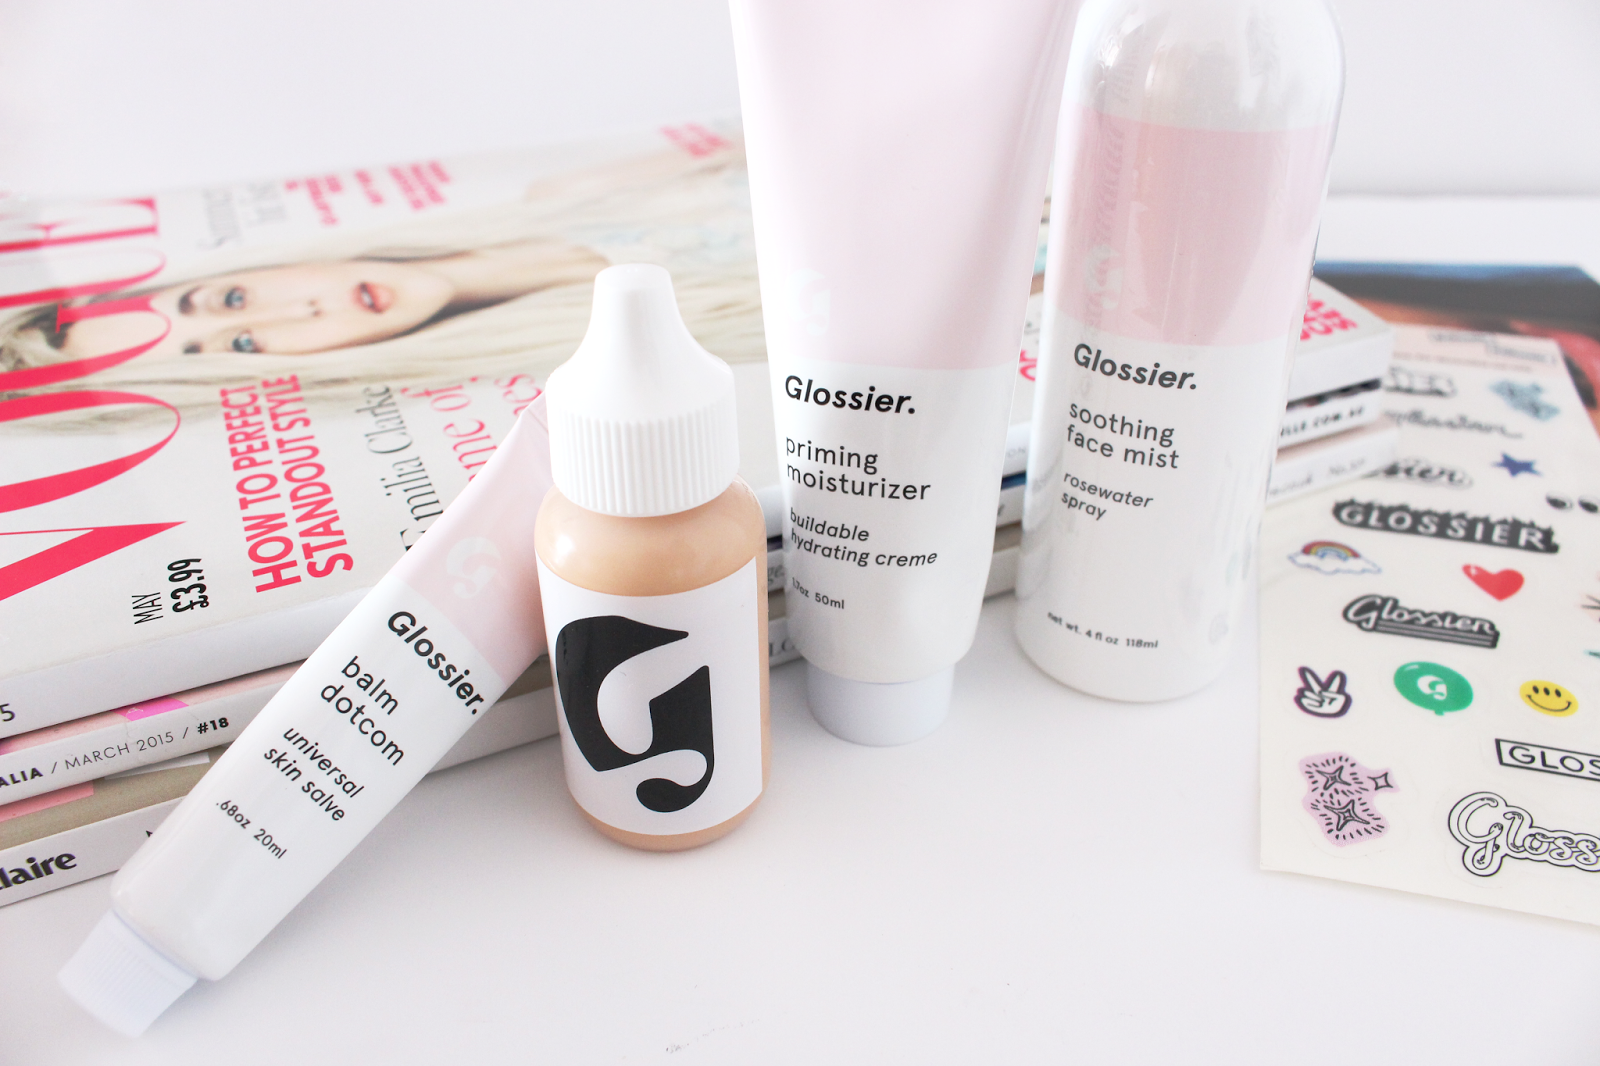 get glossier in the uk and rest of the world (review)